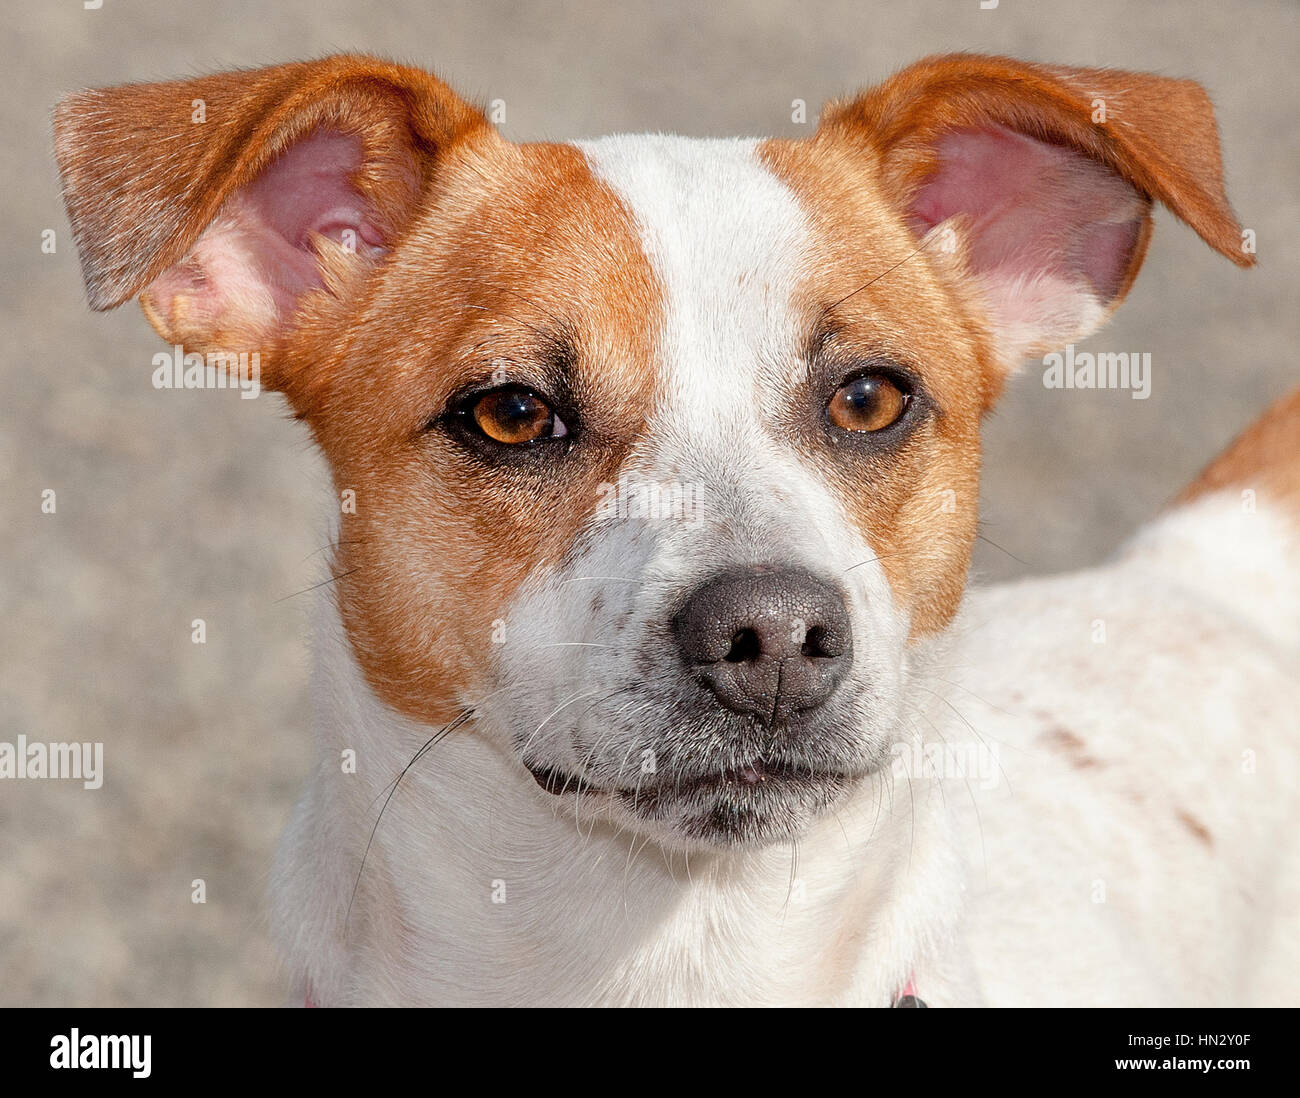 Adorable white and brown small dog headshot close up outside in the sun stock image